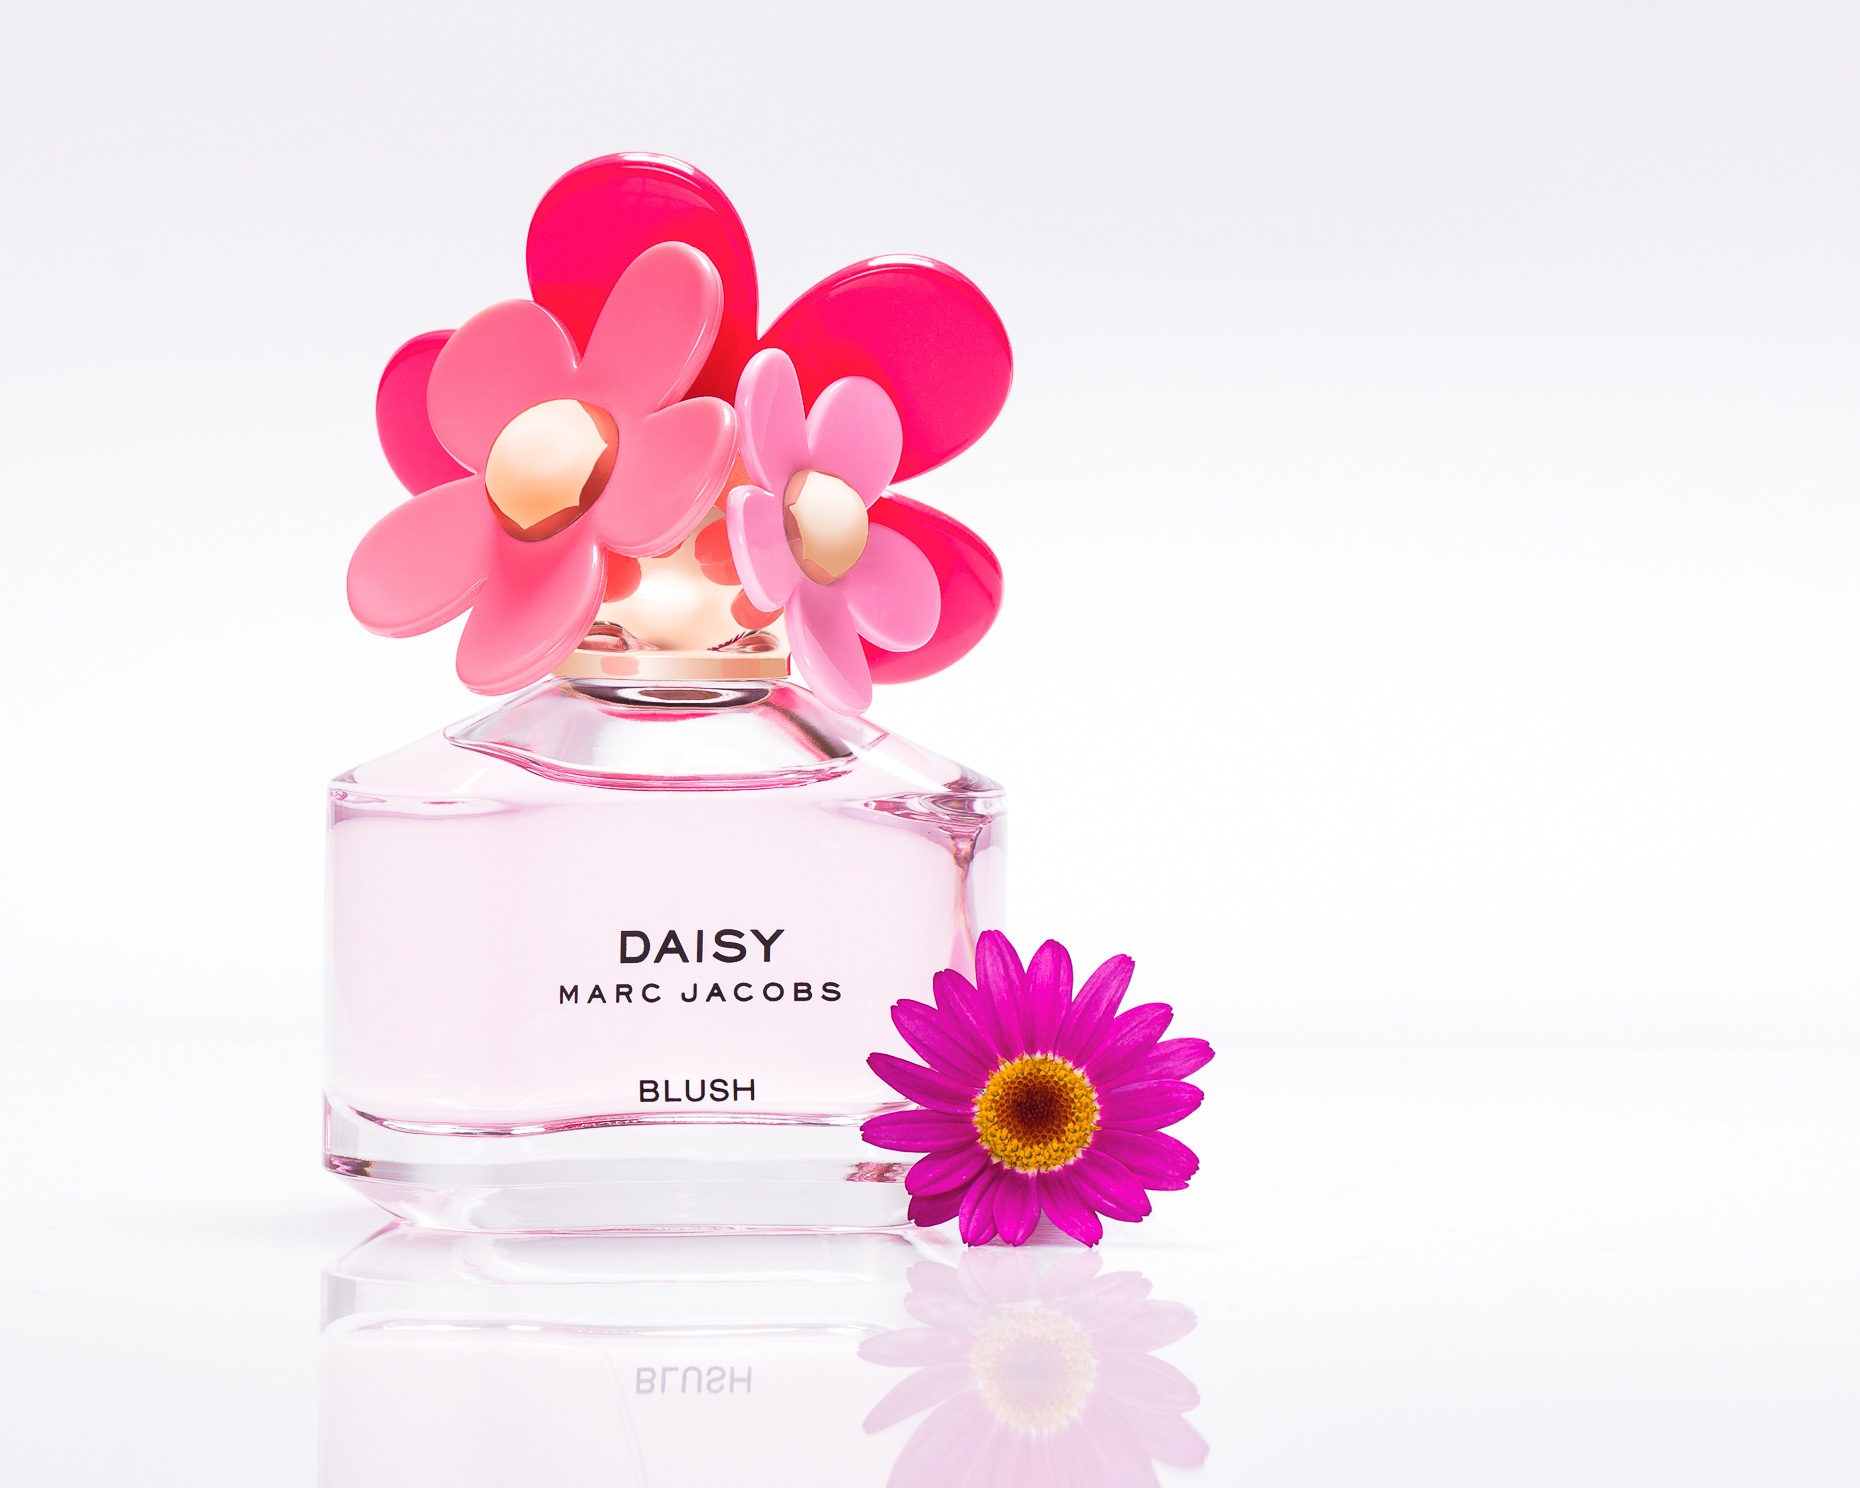 Fragrance Daisy Blush - Christophe Benard Photography - Edmonton Commercial Photographer, Edmonton Commercial Photography, Edmonton Product Photographer, Edmonton Product Photography, Still Life Photographer in Canada, Product Photographer in Canada